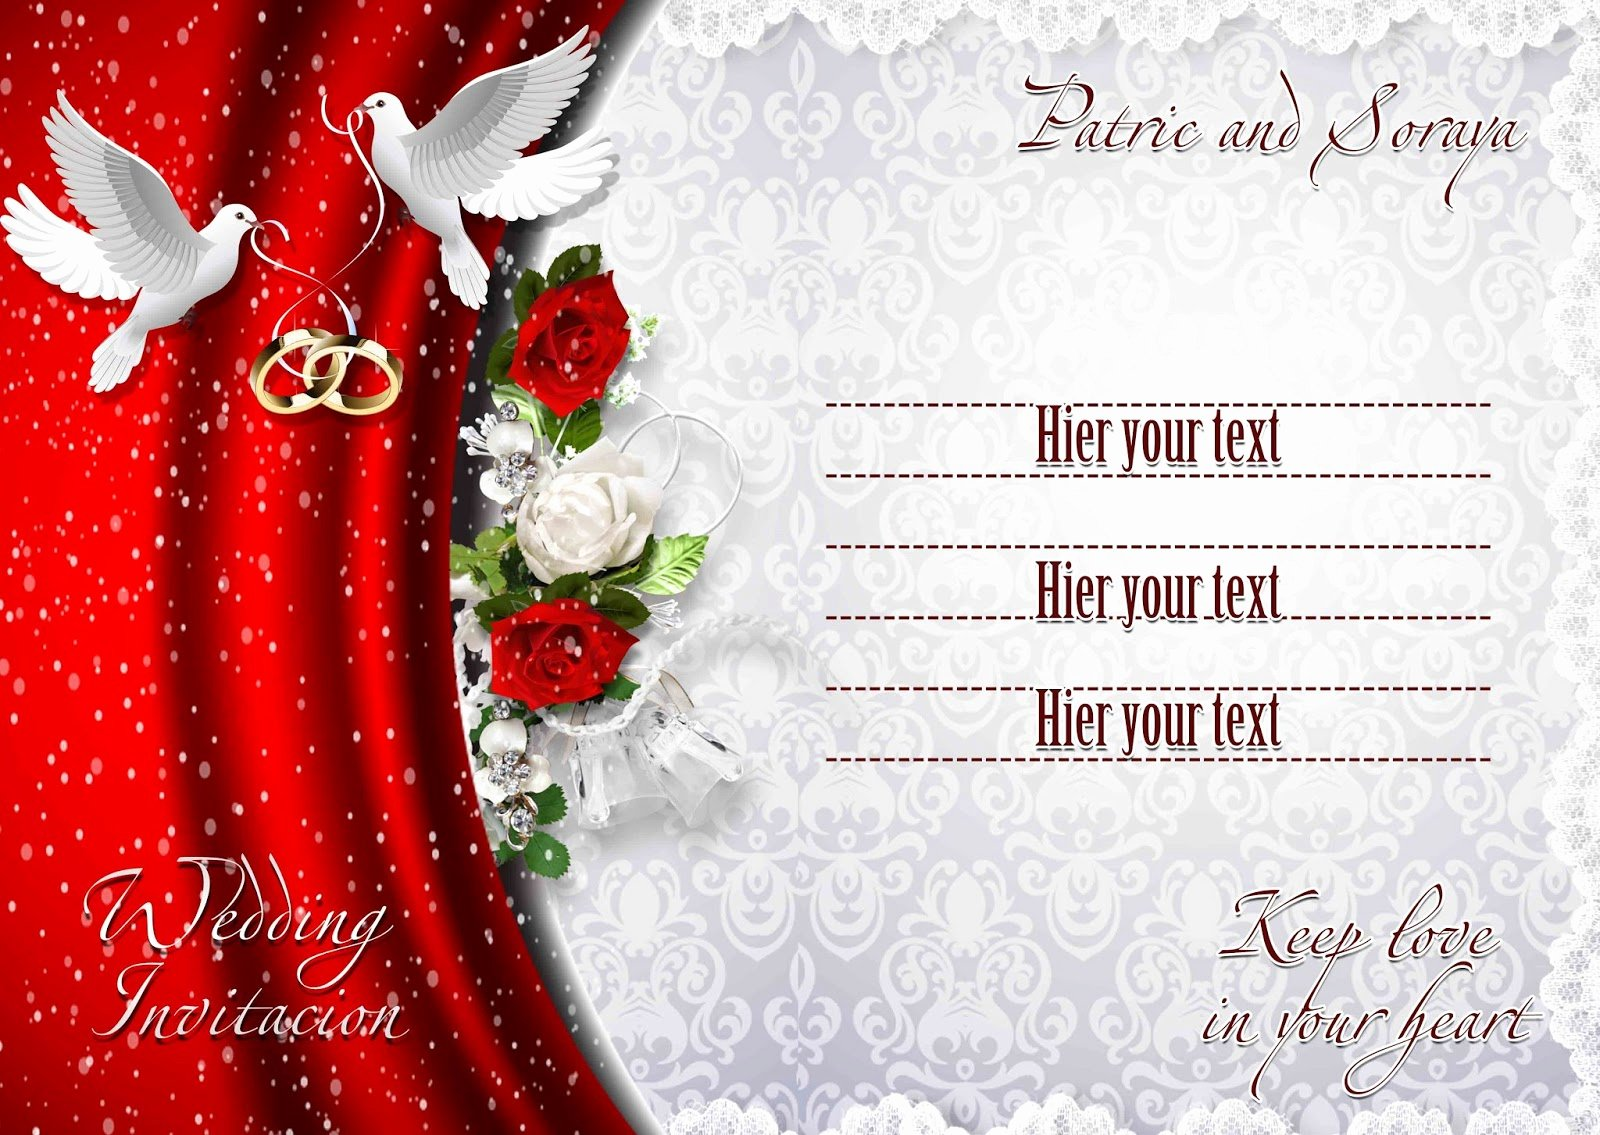 Wedding Invitations Photoshop Template Elegant Red Ribbon Coloring Pages Erieairfair